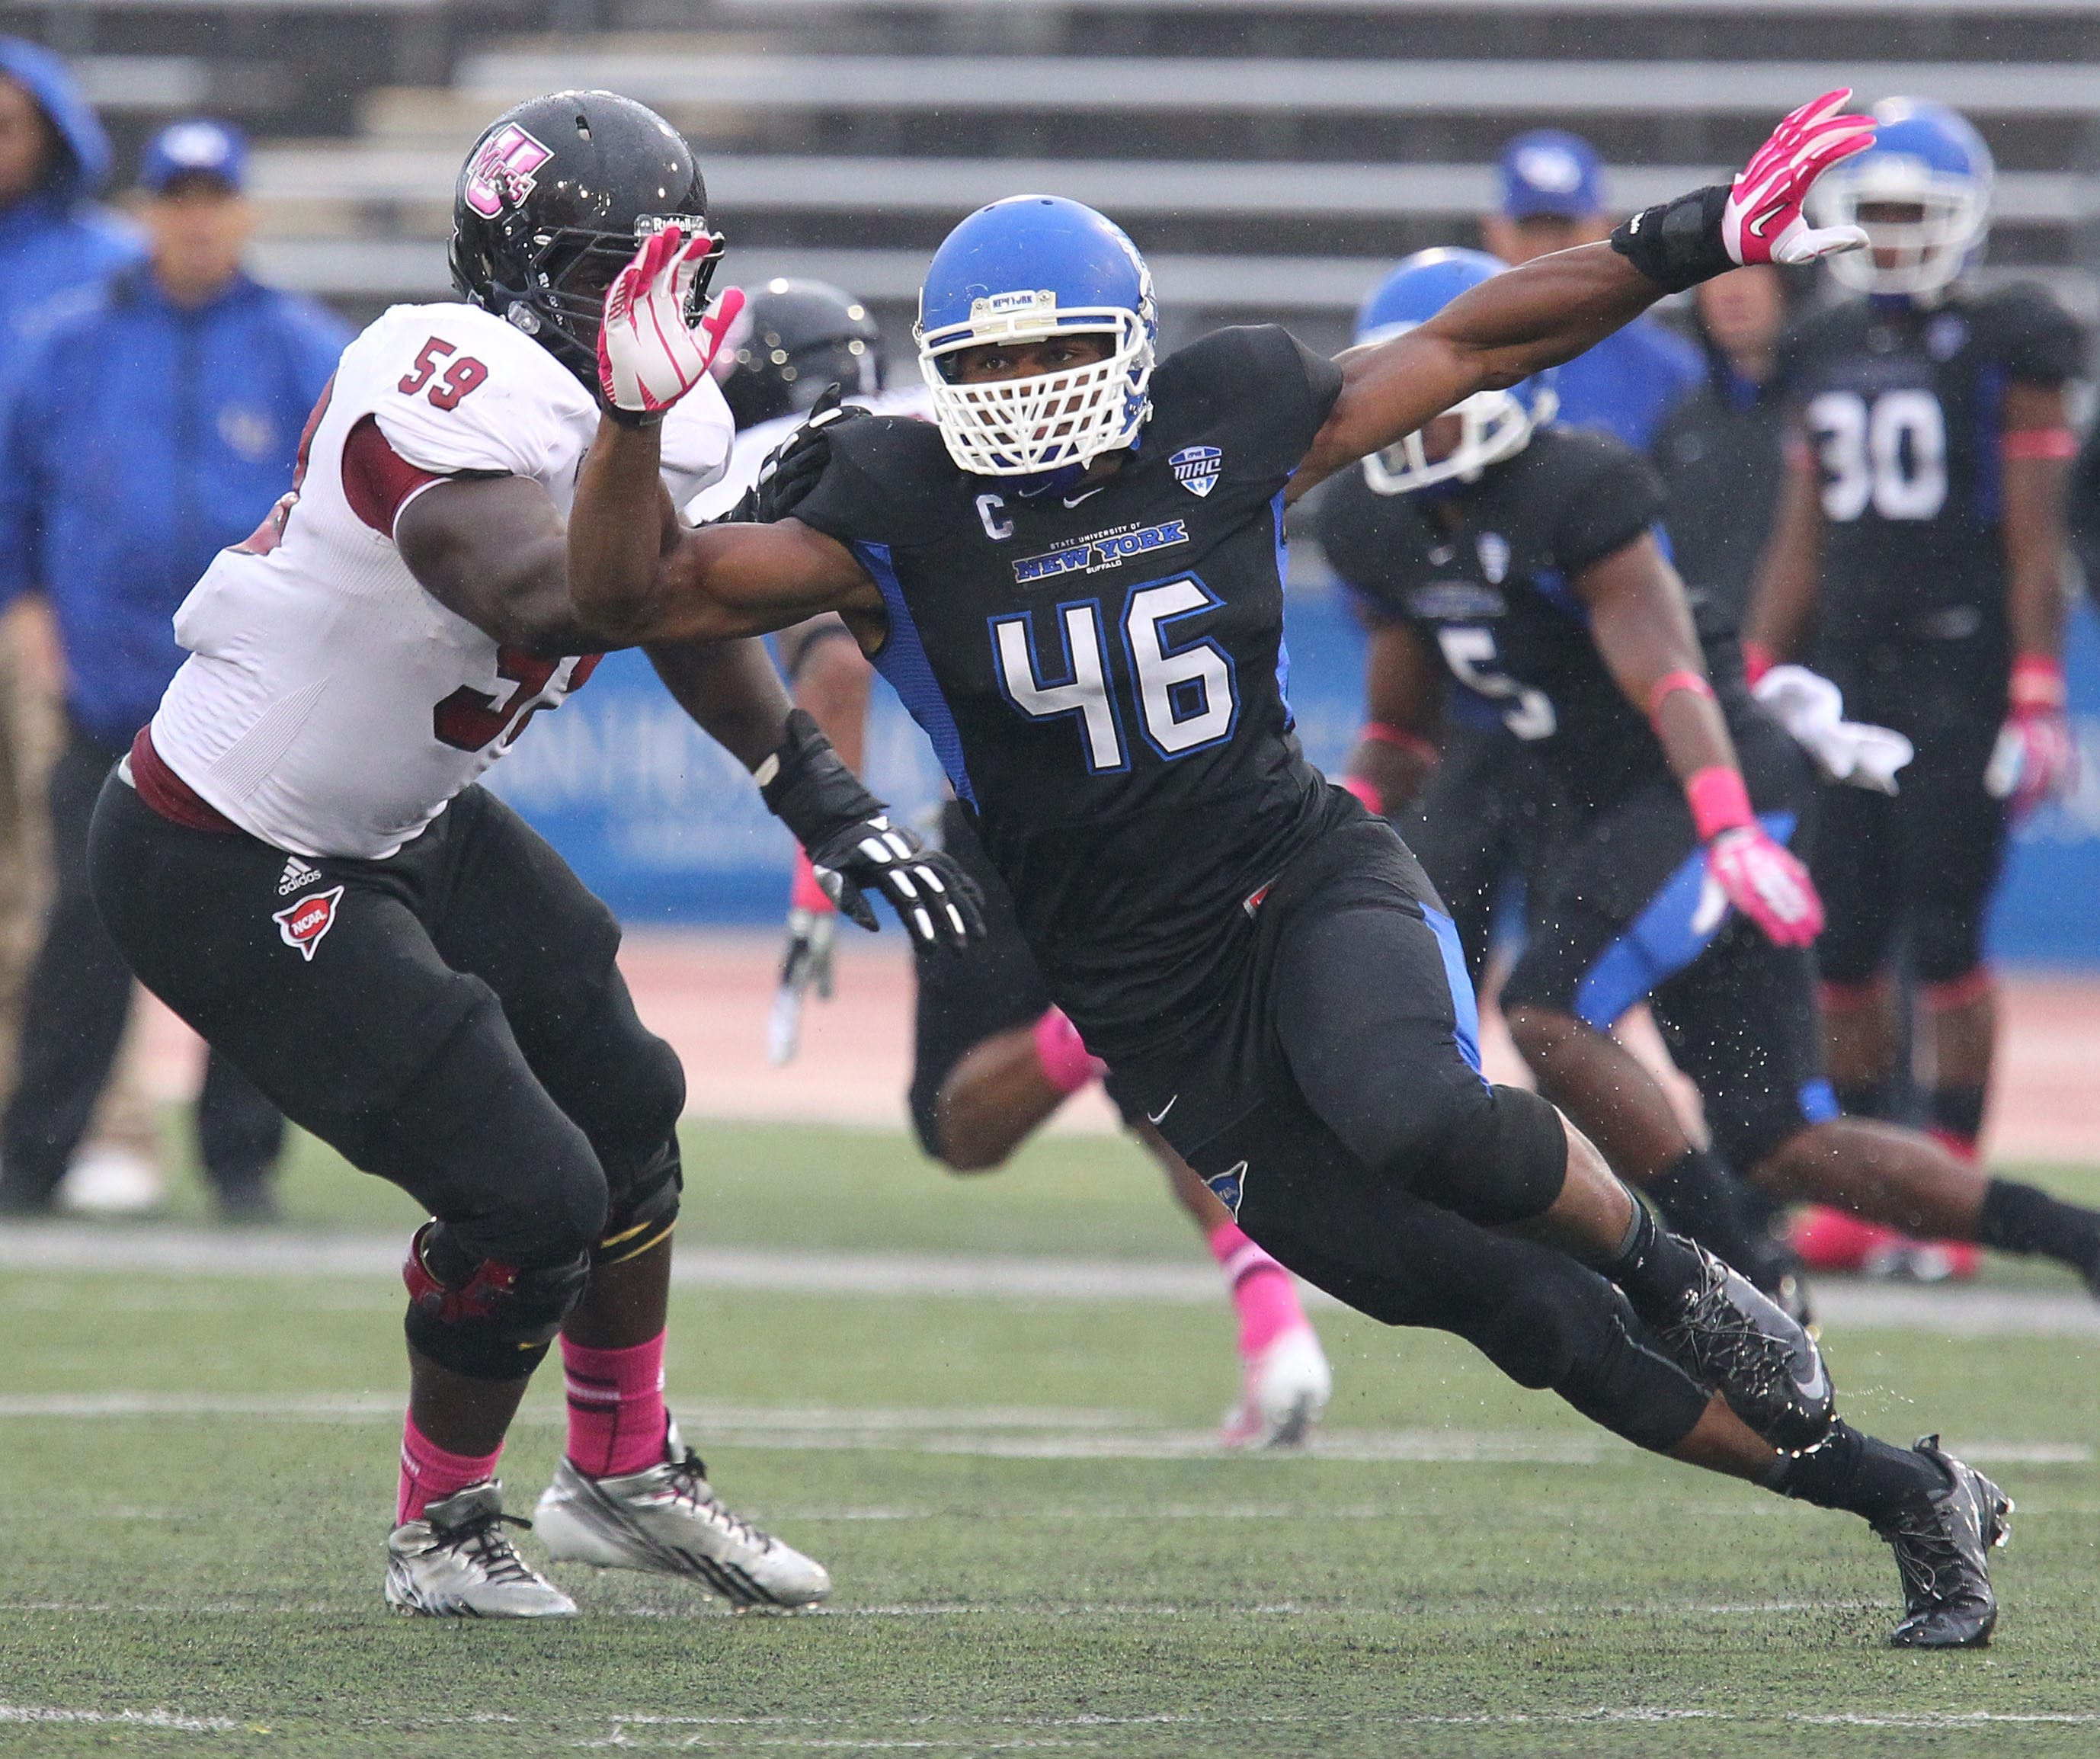 UB's Kahlil Mack has a chance to be named the nation's best linebacker.